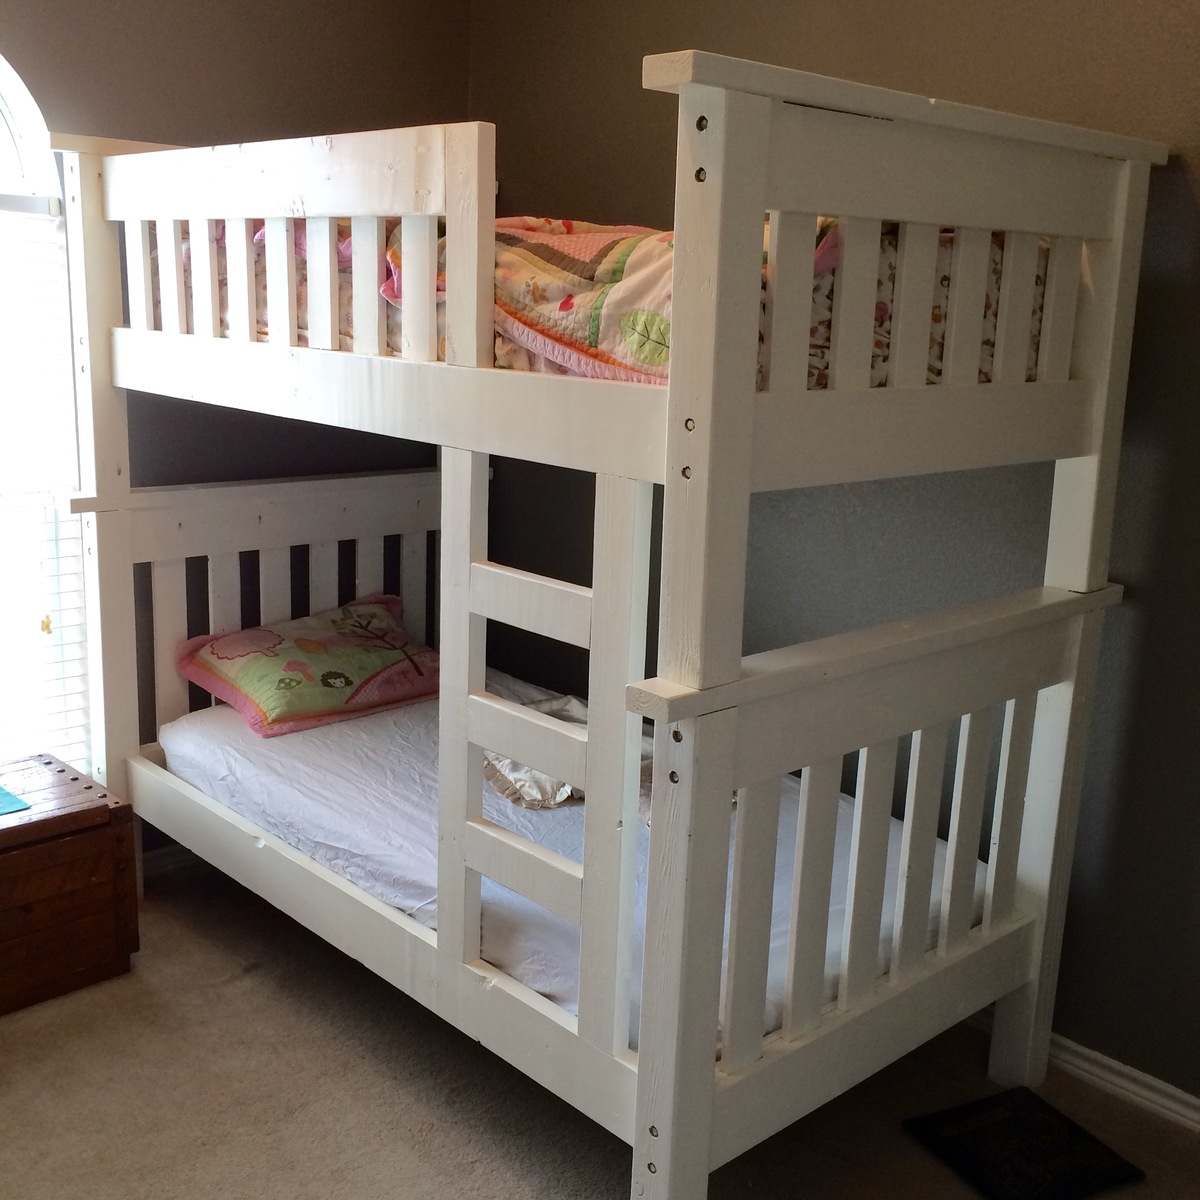 Ana White My Bunk Bed Build Diy Projects